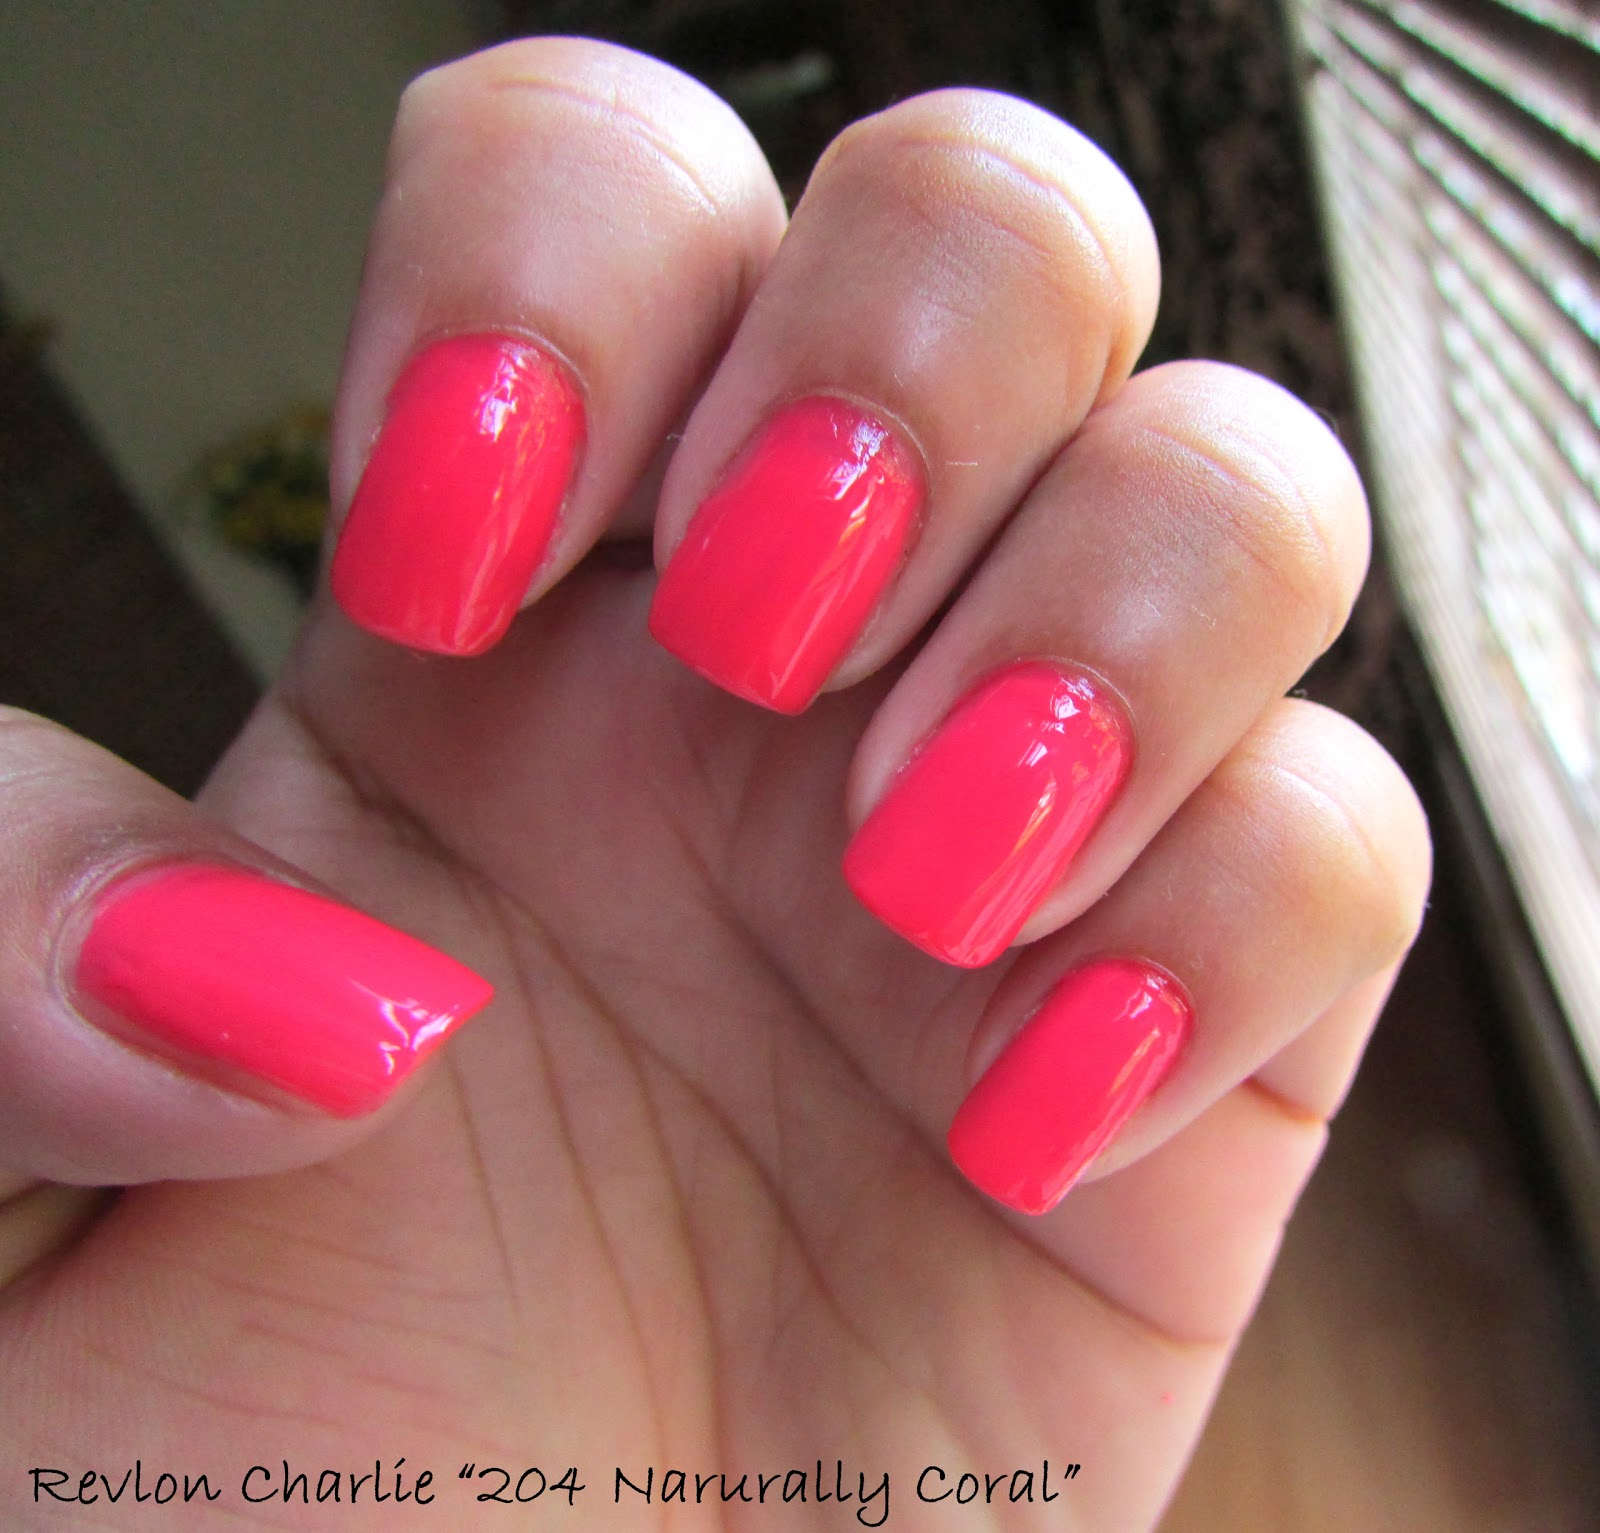 Summer Nail Colors 2014 Fresh on the nails and it